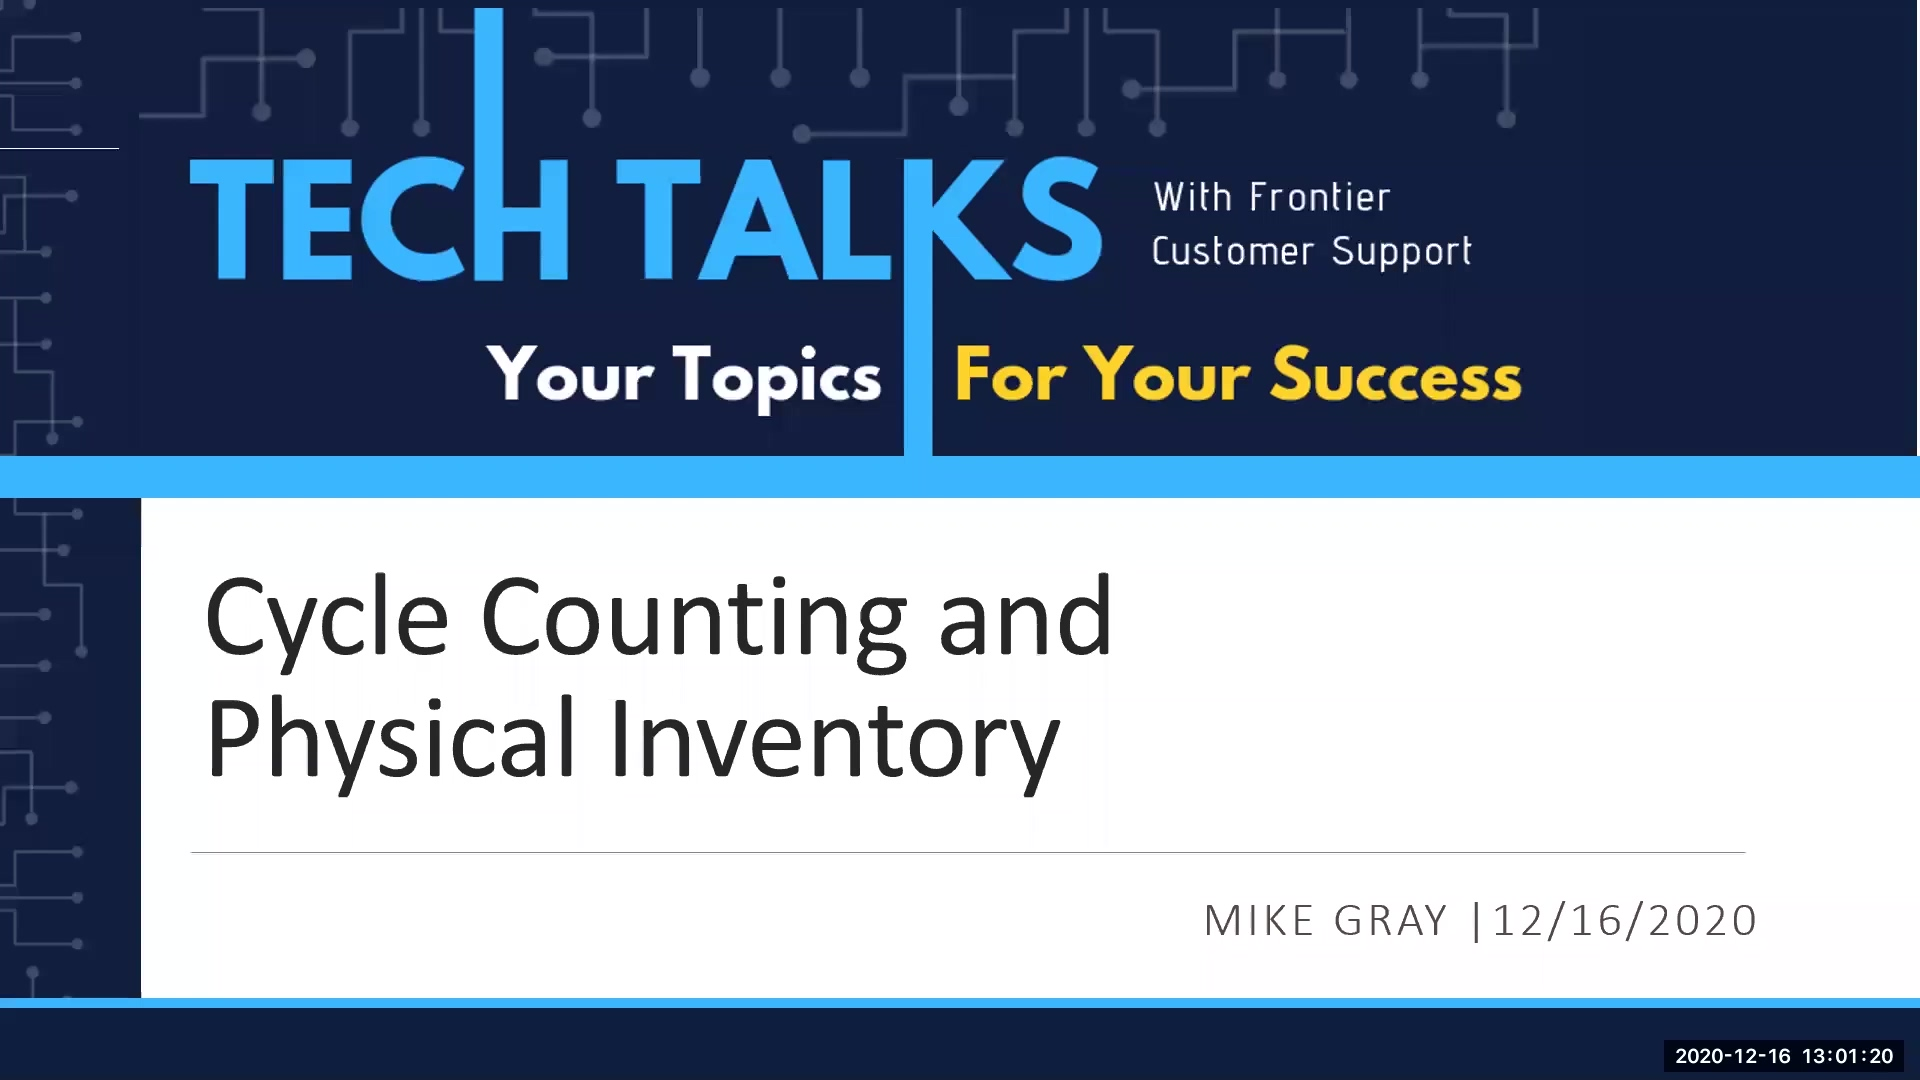 FC-TT-Cycle-Counting-Physical-Inventory